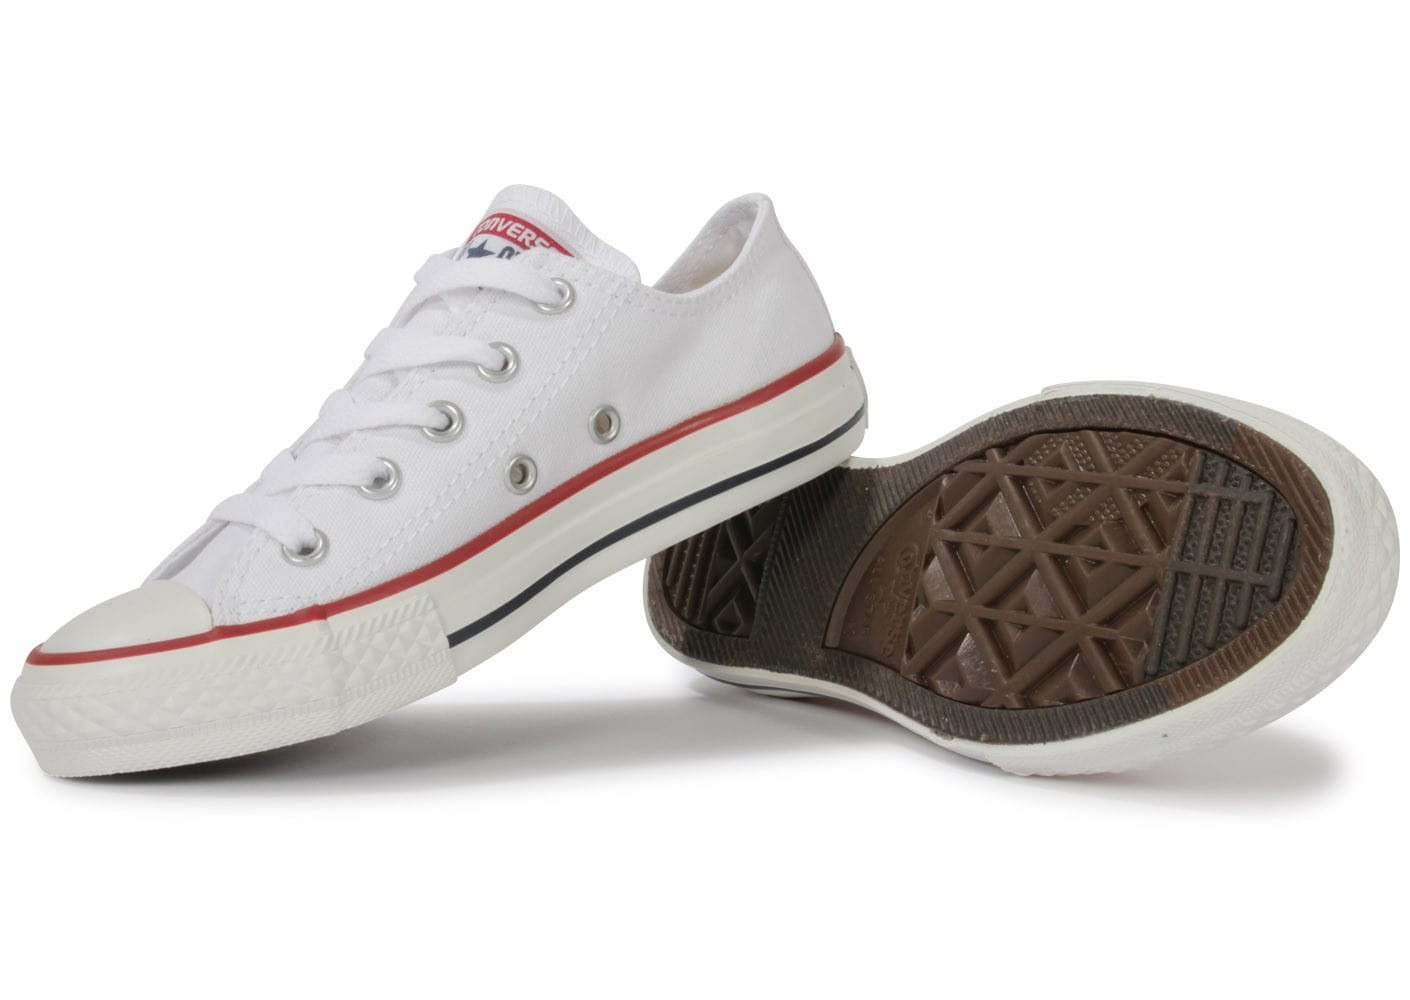 converse chuck taylor all star enfant basse blanche chaussures pour coll giens chausport. Black Bedroom Furniture Sets. Home Design Ideas